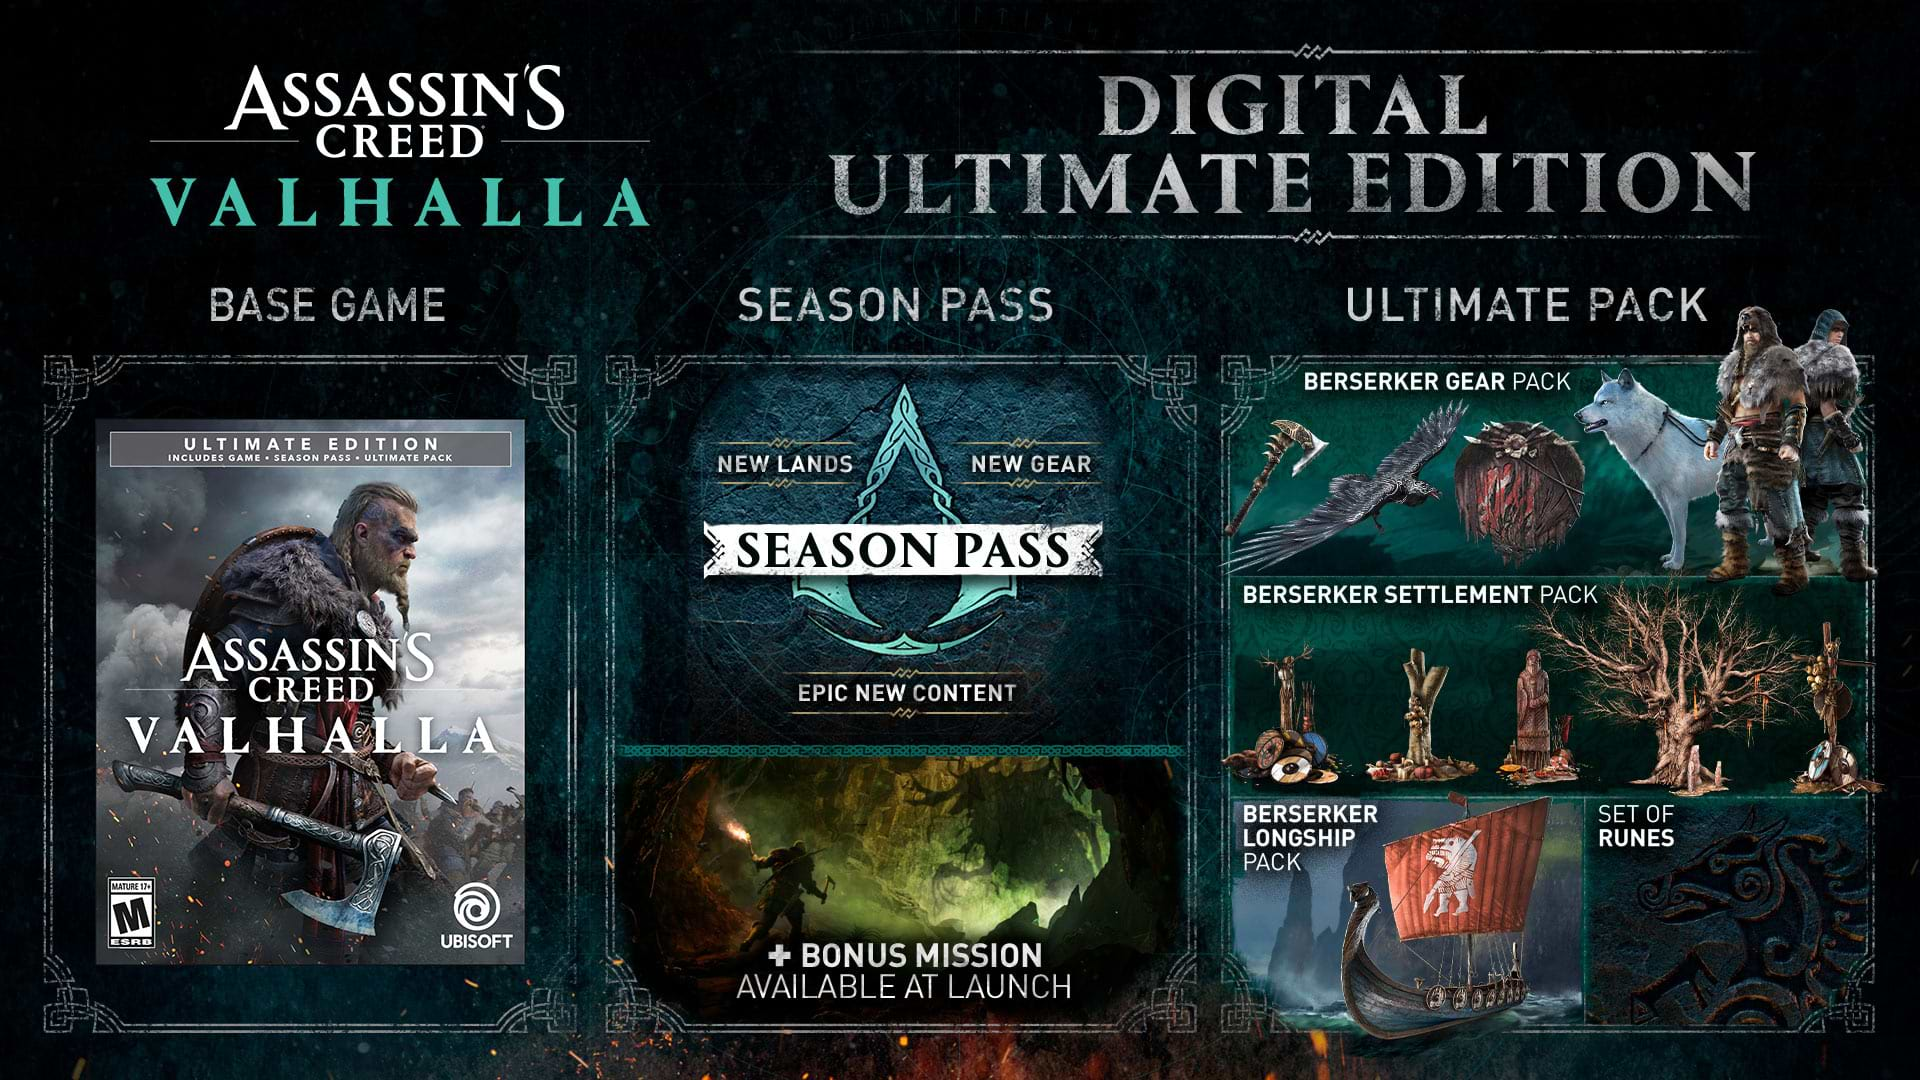 Assassin's Creed Valhalla Ultimate+DLC+PATCHES⭐️TOP⭐